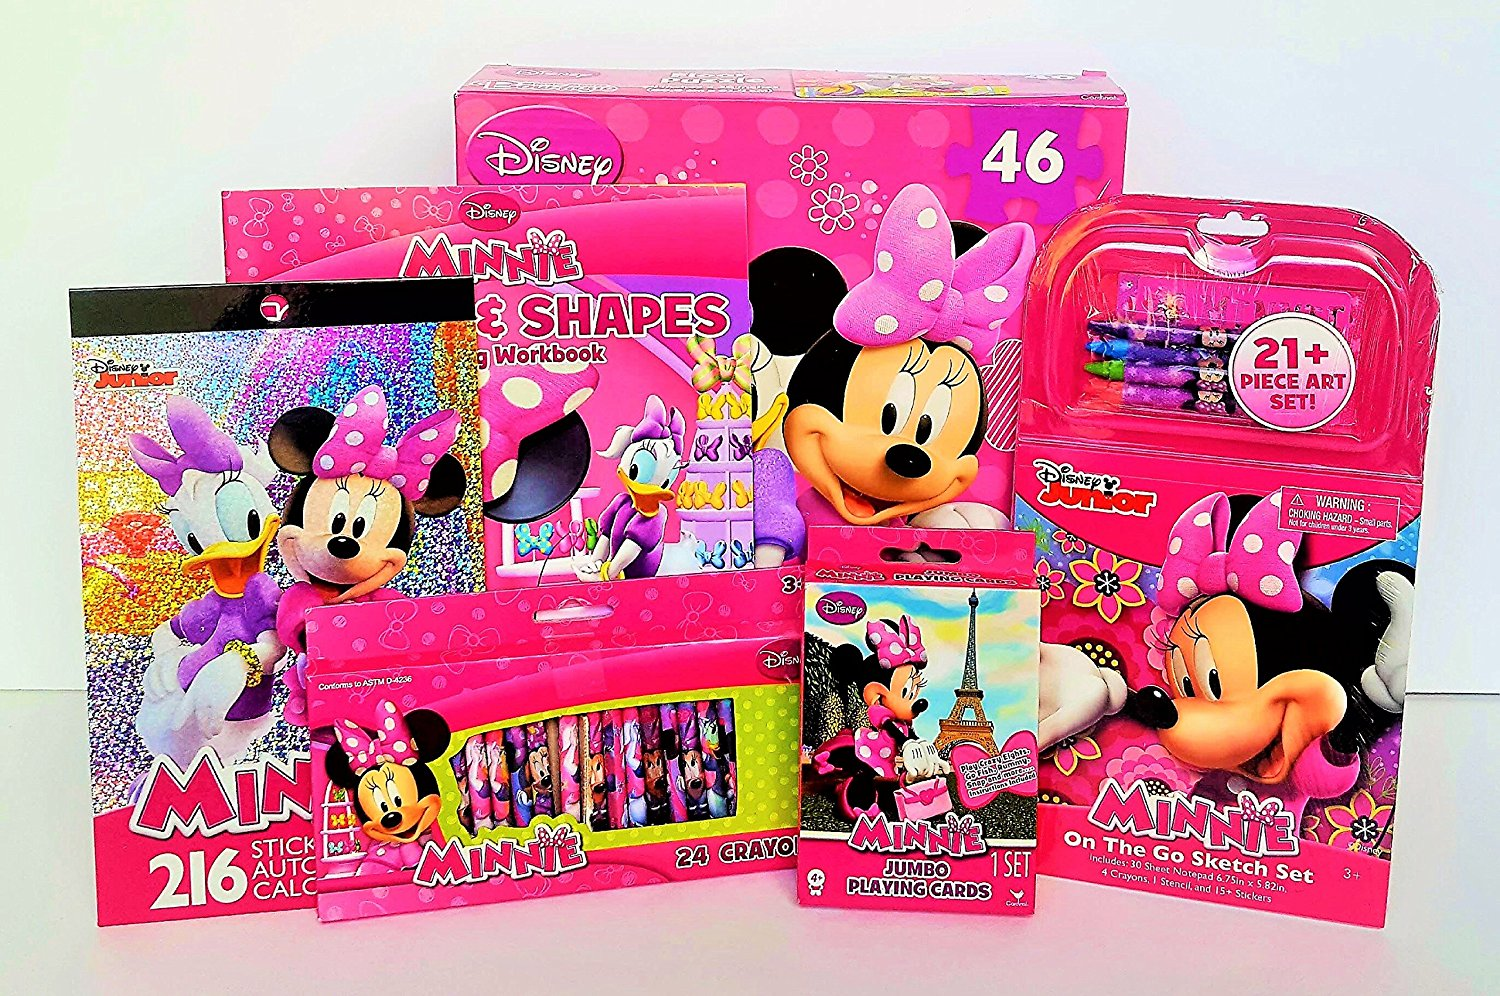 Deluxe Disney Minnie Mouse Educational & Fun Bundle With Minnie Mouse 46 Piece Floor Puzzle!